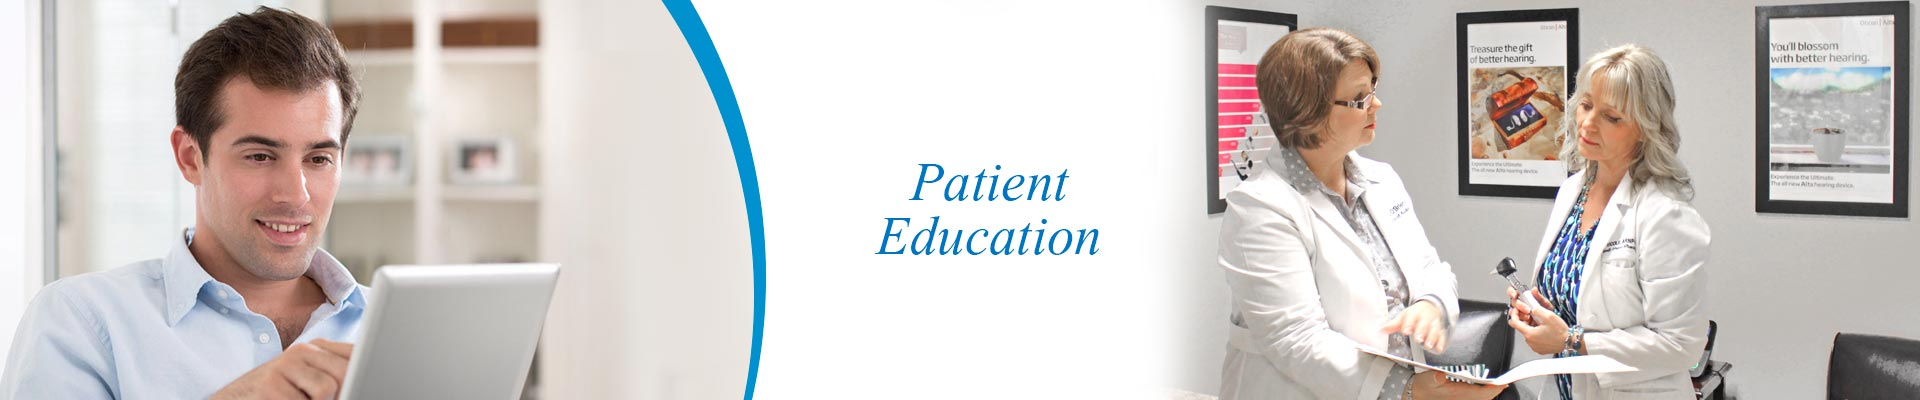 Patient Education - Associated Coastal ENT